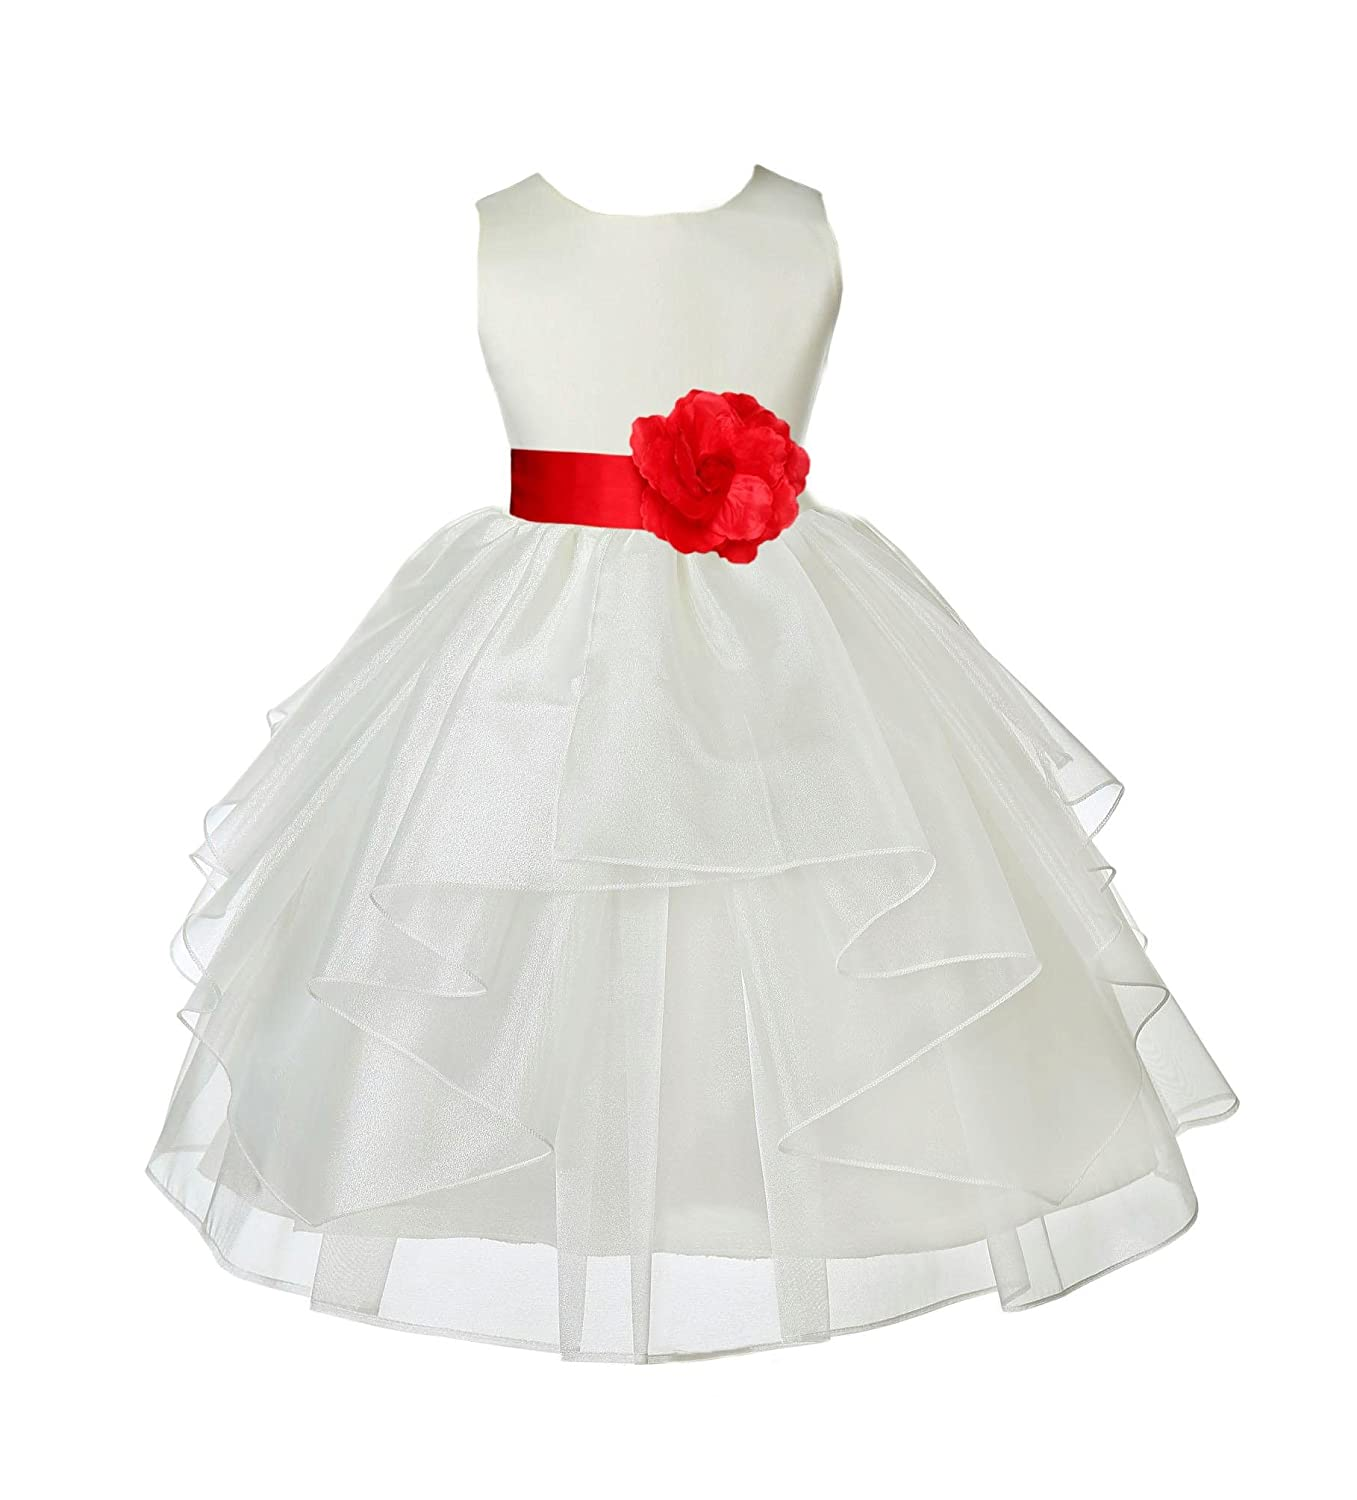 8a8ba4b83953 Amazon.com: Wedding Pageant Ivory Shimmering Organza Flower Girl Dress  Toddler Gown 4613T: Clothing